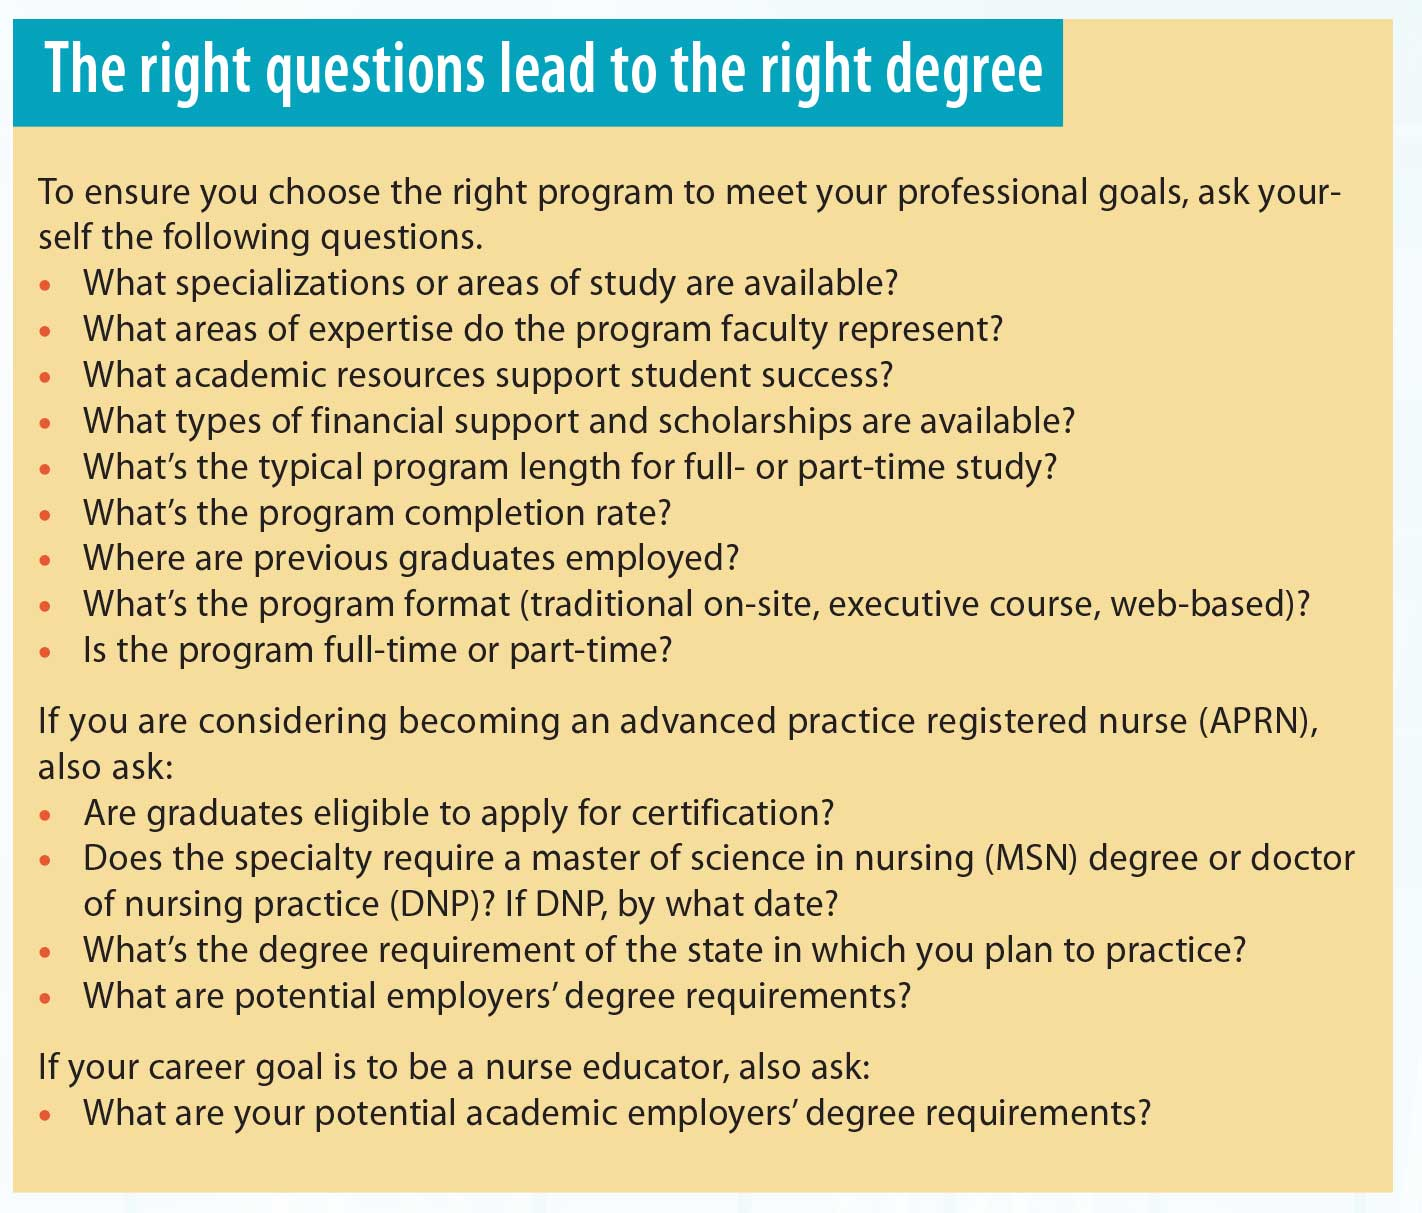 phd or dnp defining the path to your career destination while